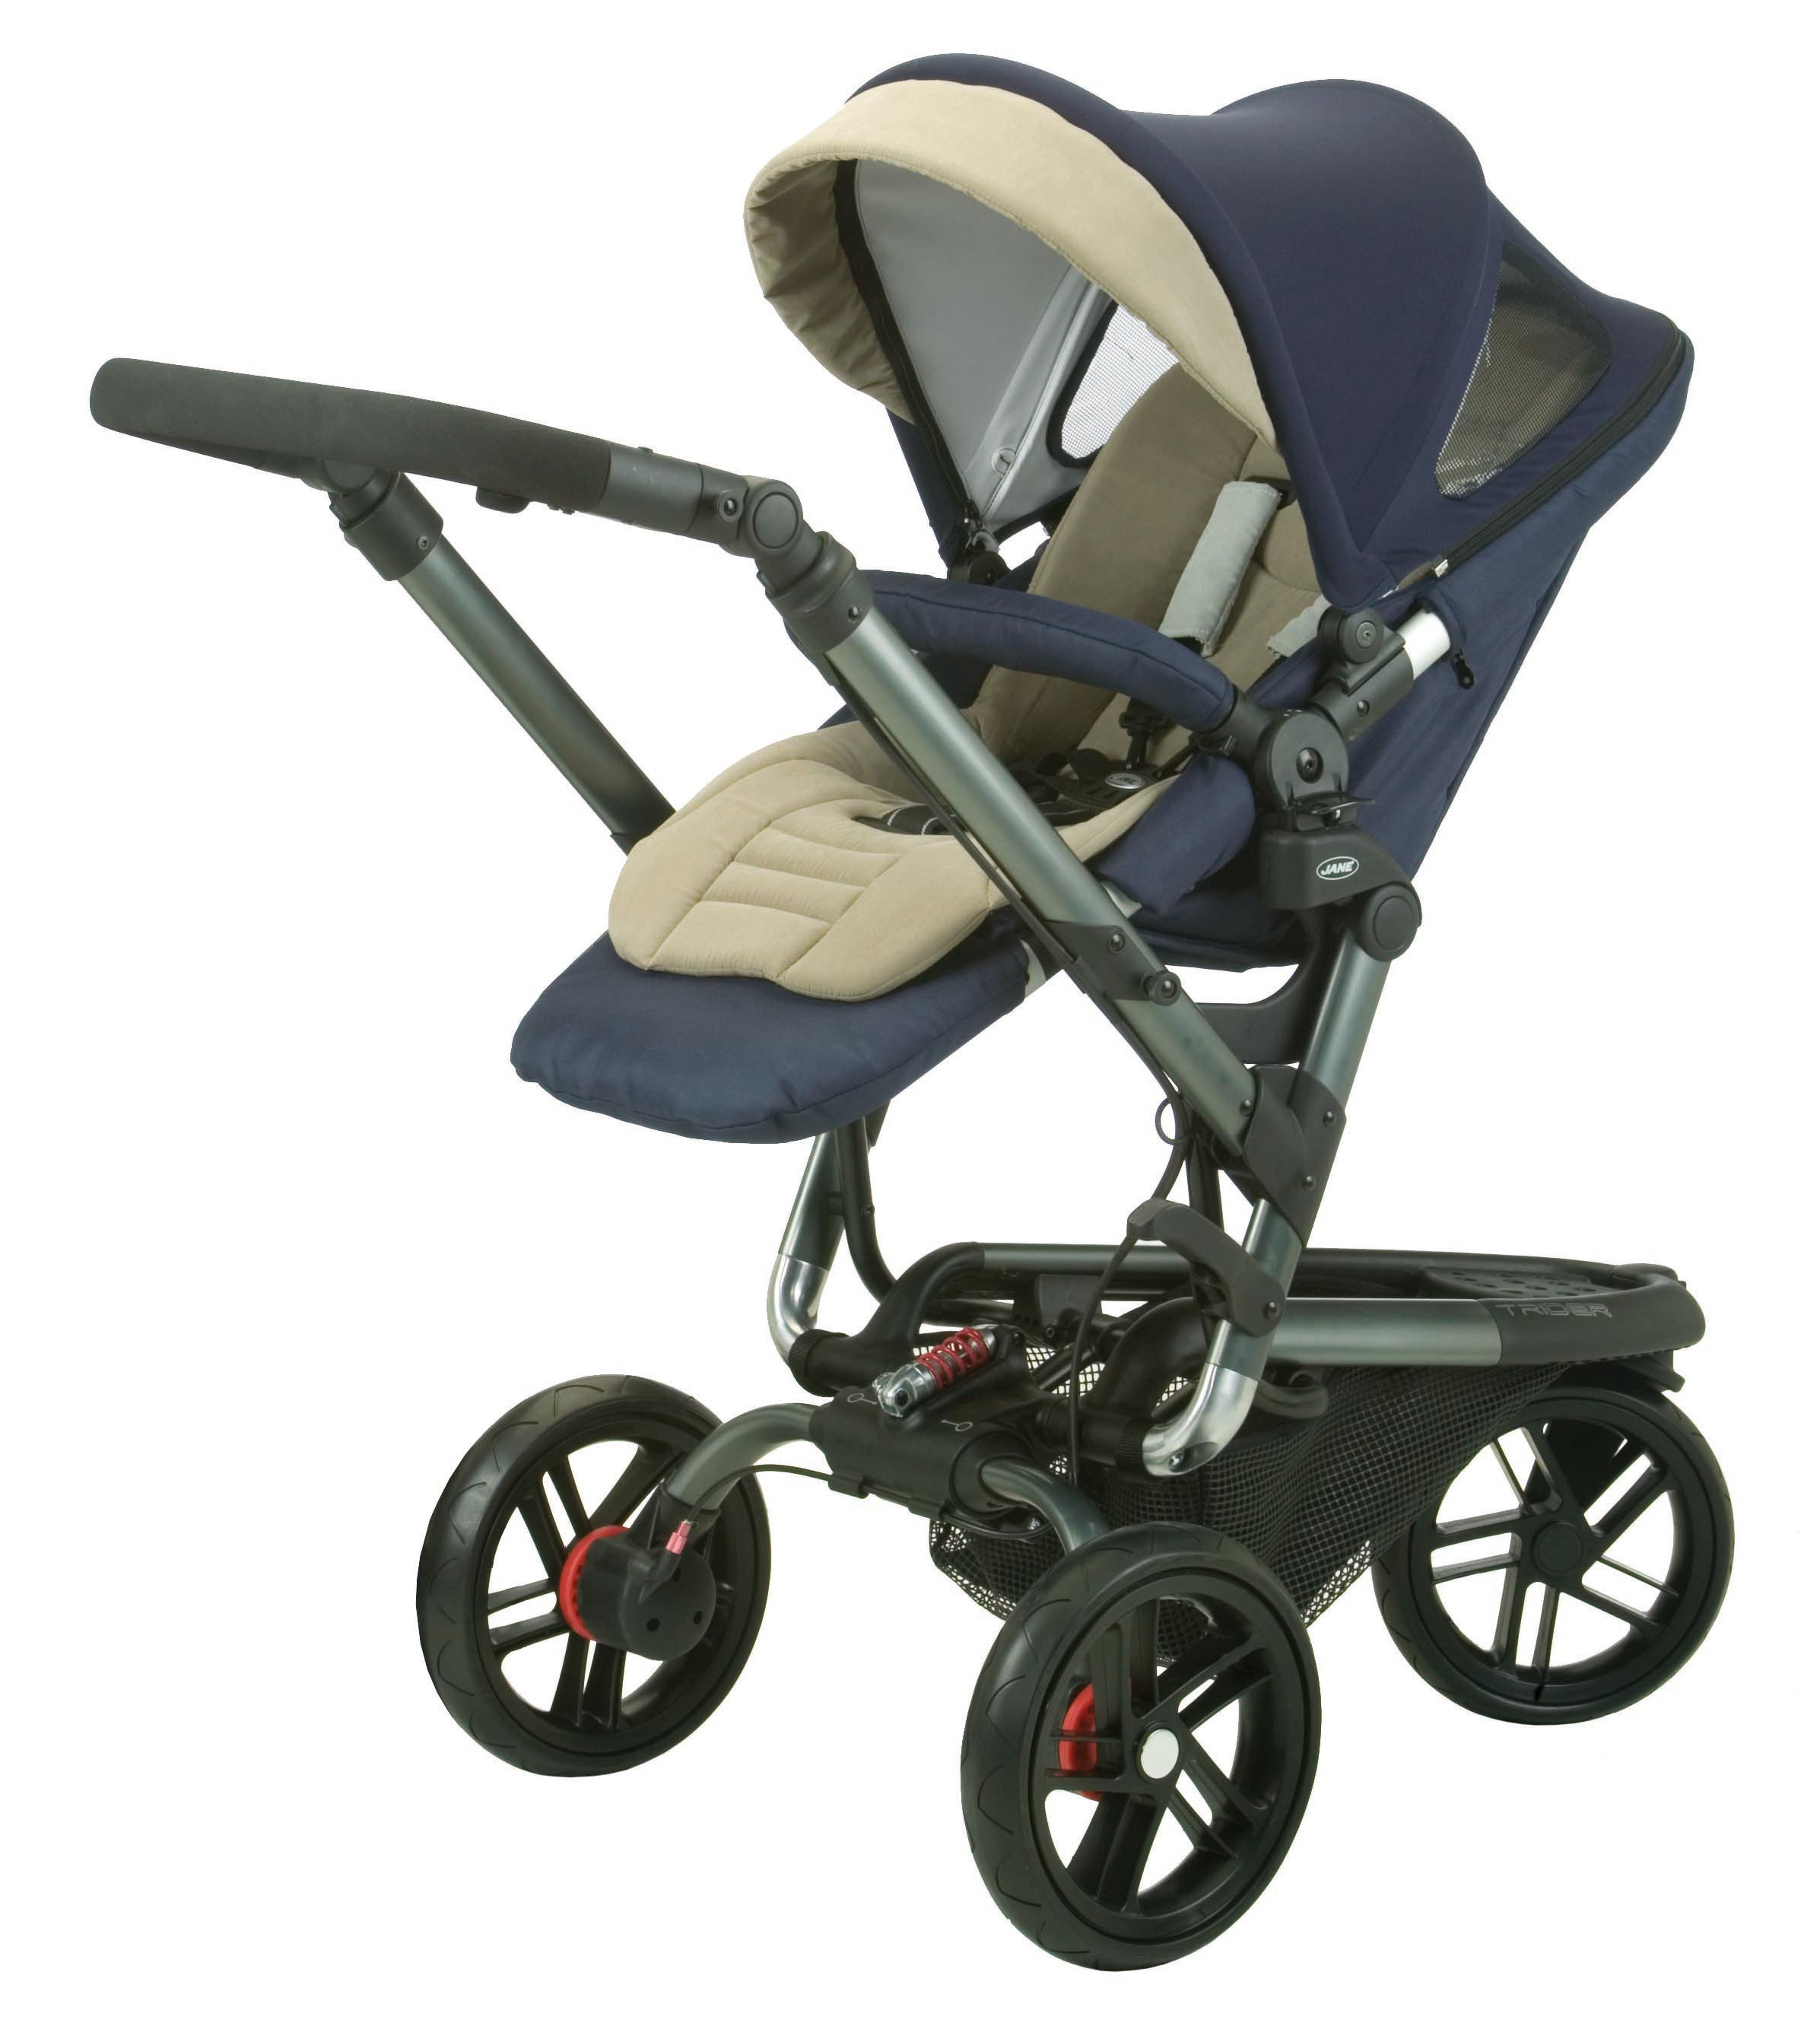 new trider pushchair from Jane